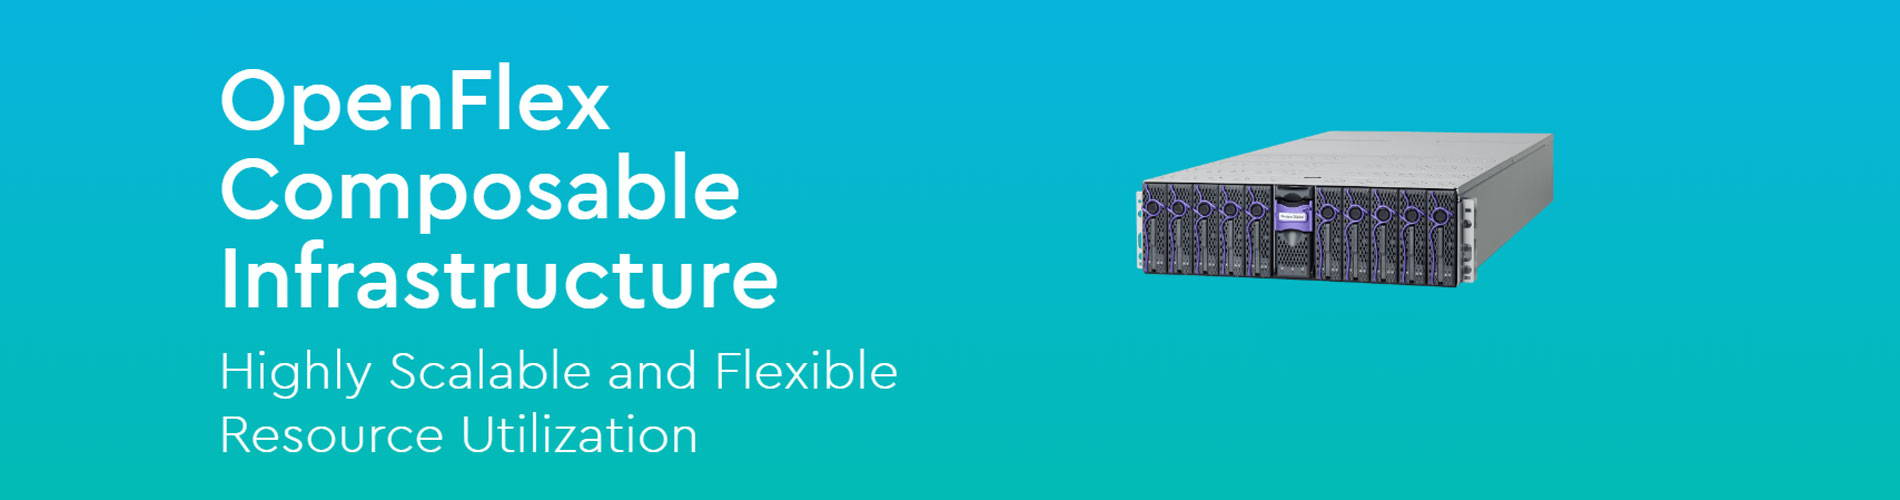 OpenFlex Composable Infrastructure